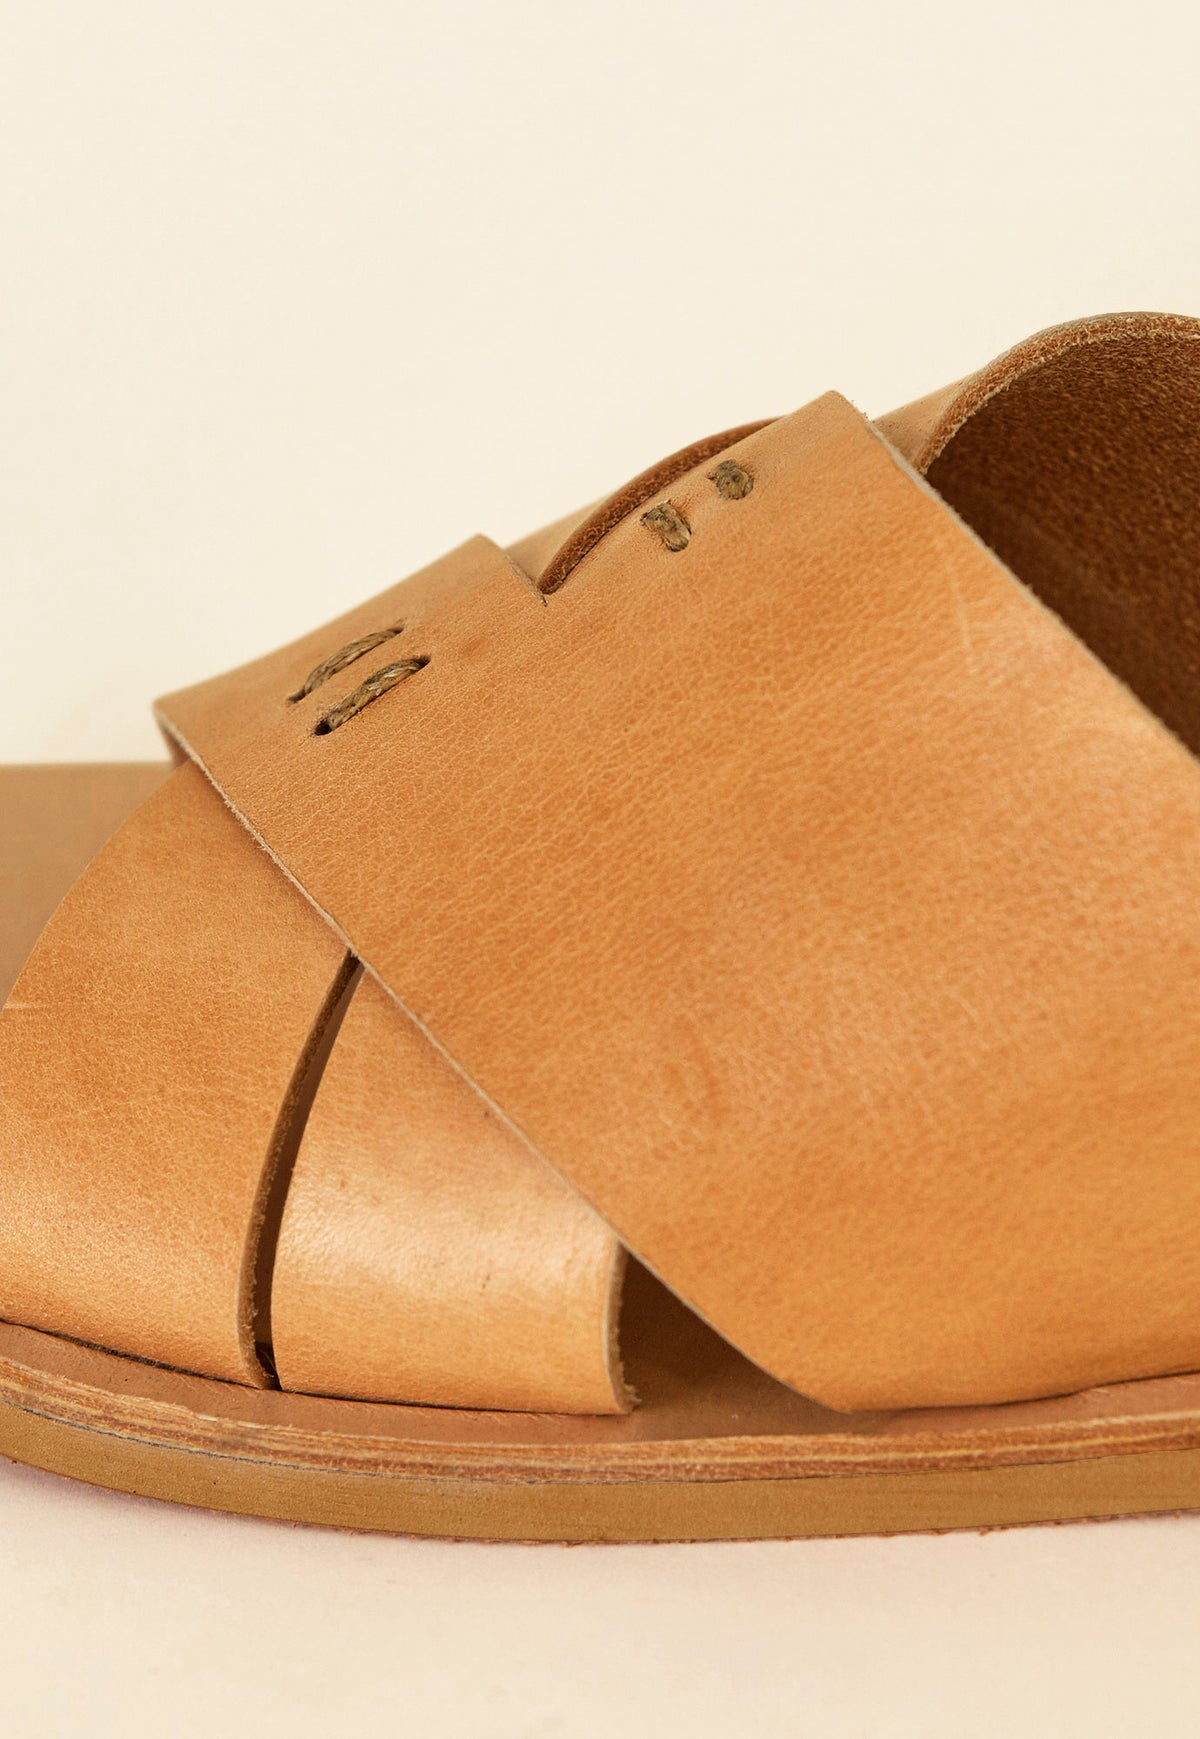 Easy Sandal - Almond